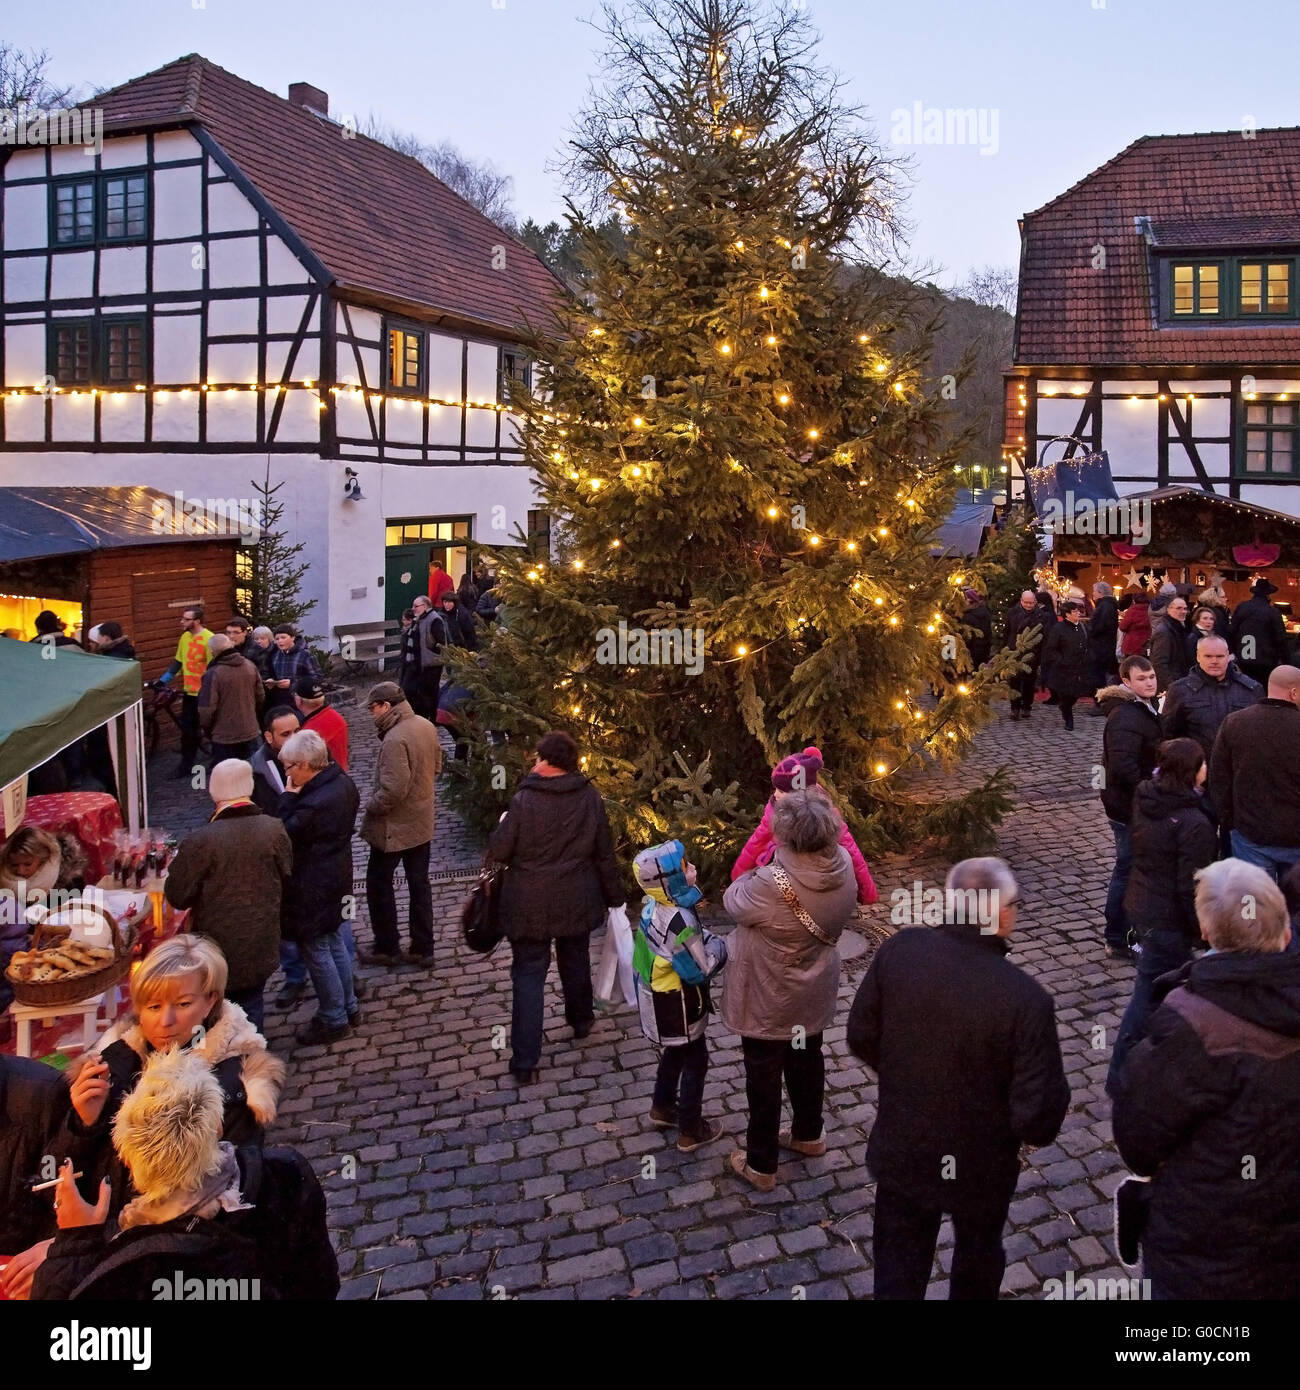 Iserlohn Weihnachtsmarkt.Christmas Market At Maste Barendorf Iserlohn Stock Photo 103542135